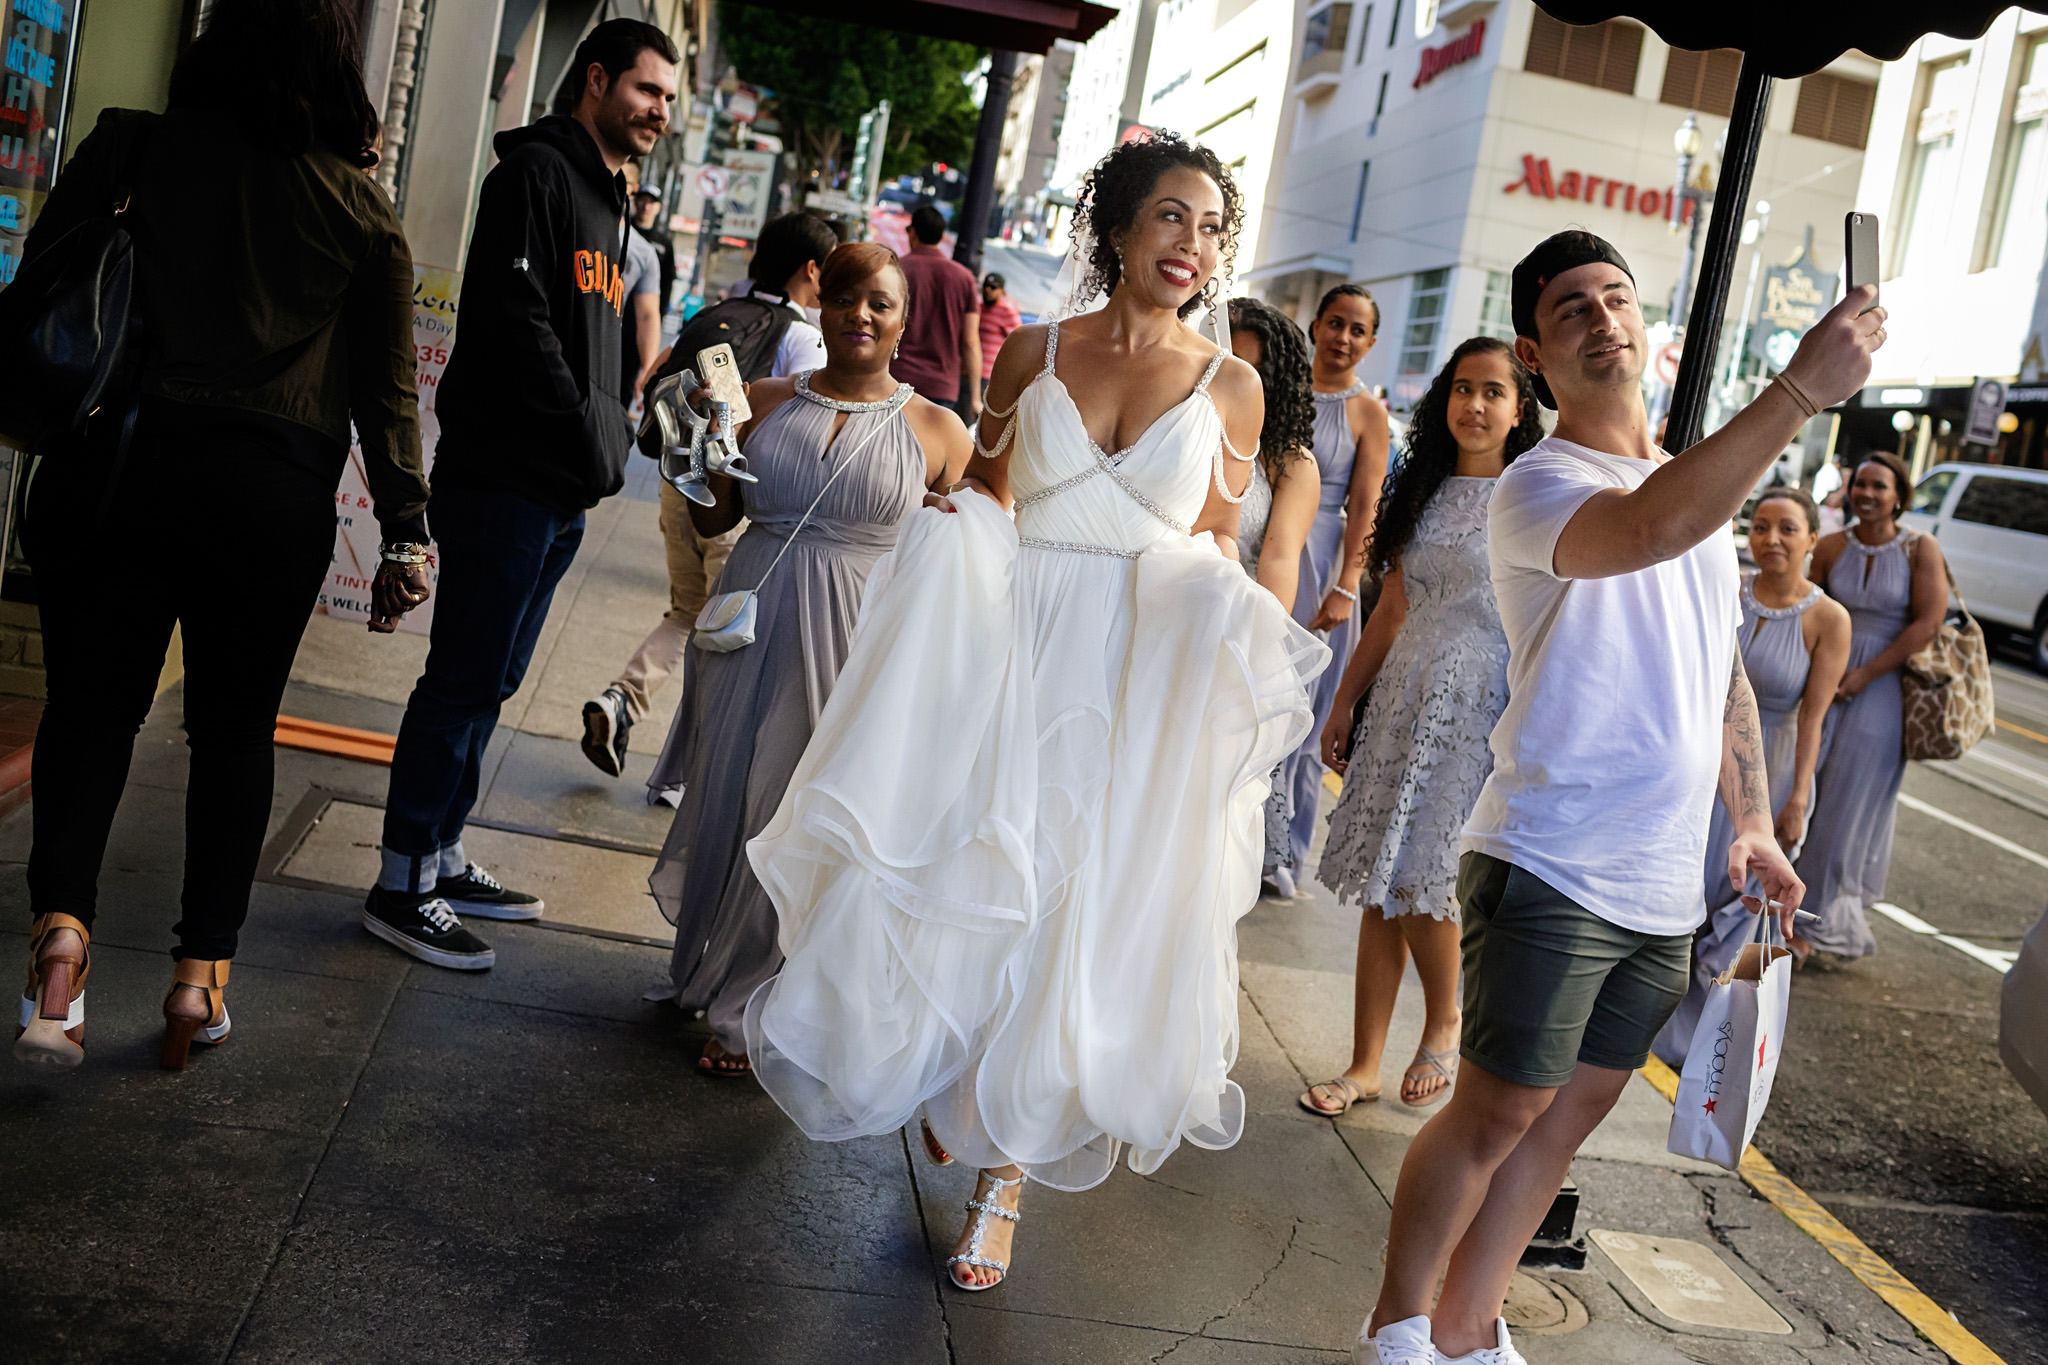 Bride and her bridal party in the street in San Francisco, California